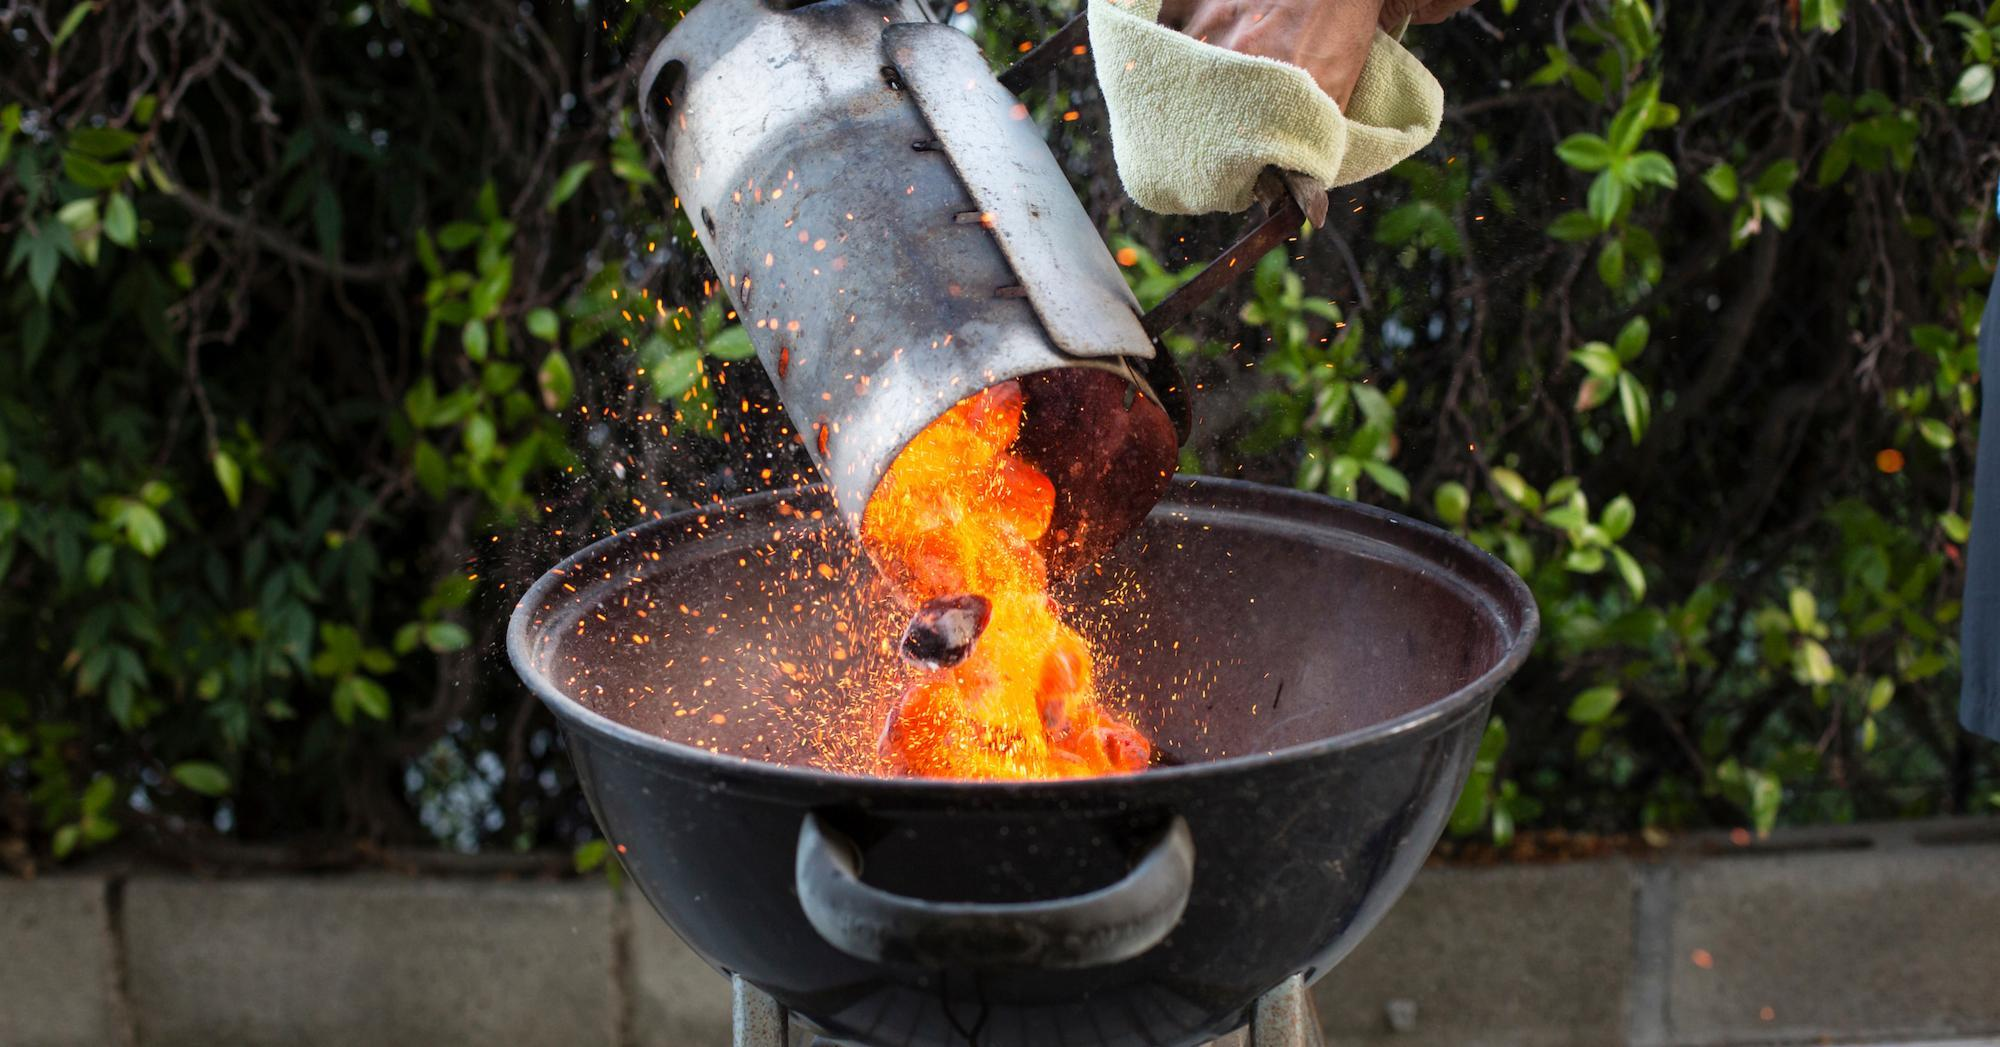 how to start a charcoal grill cnet